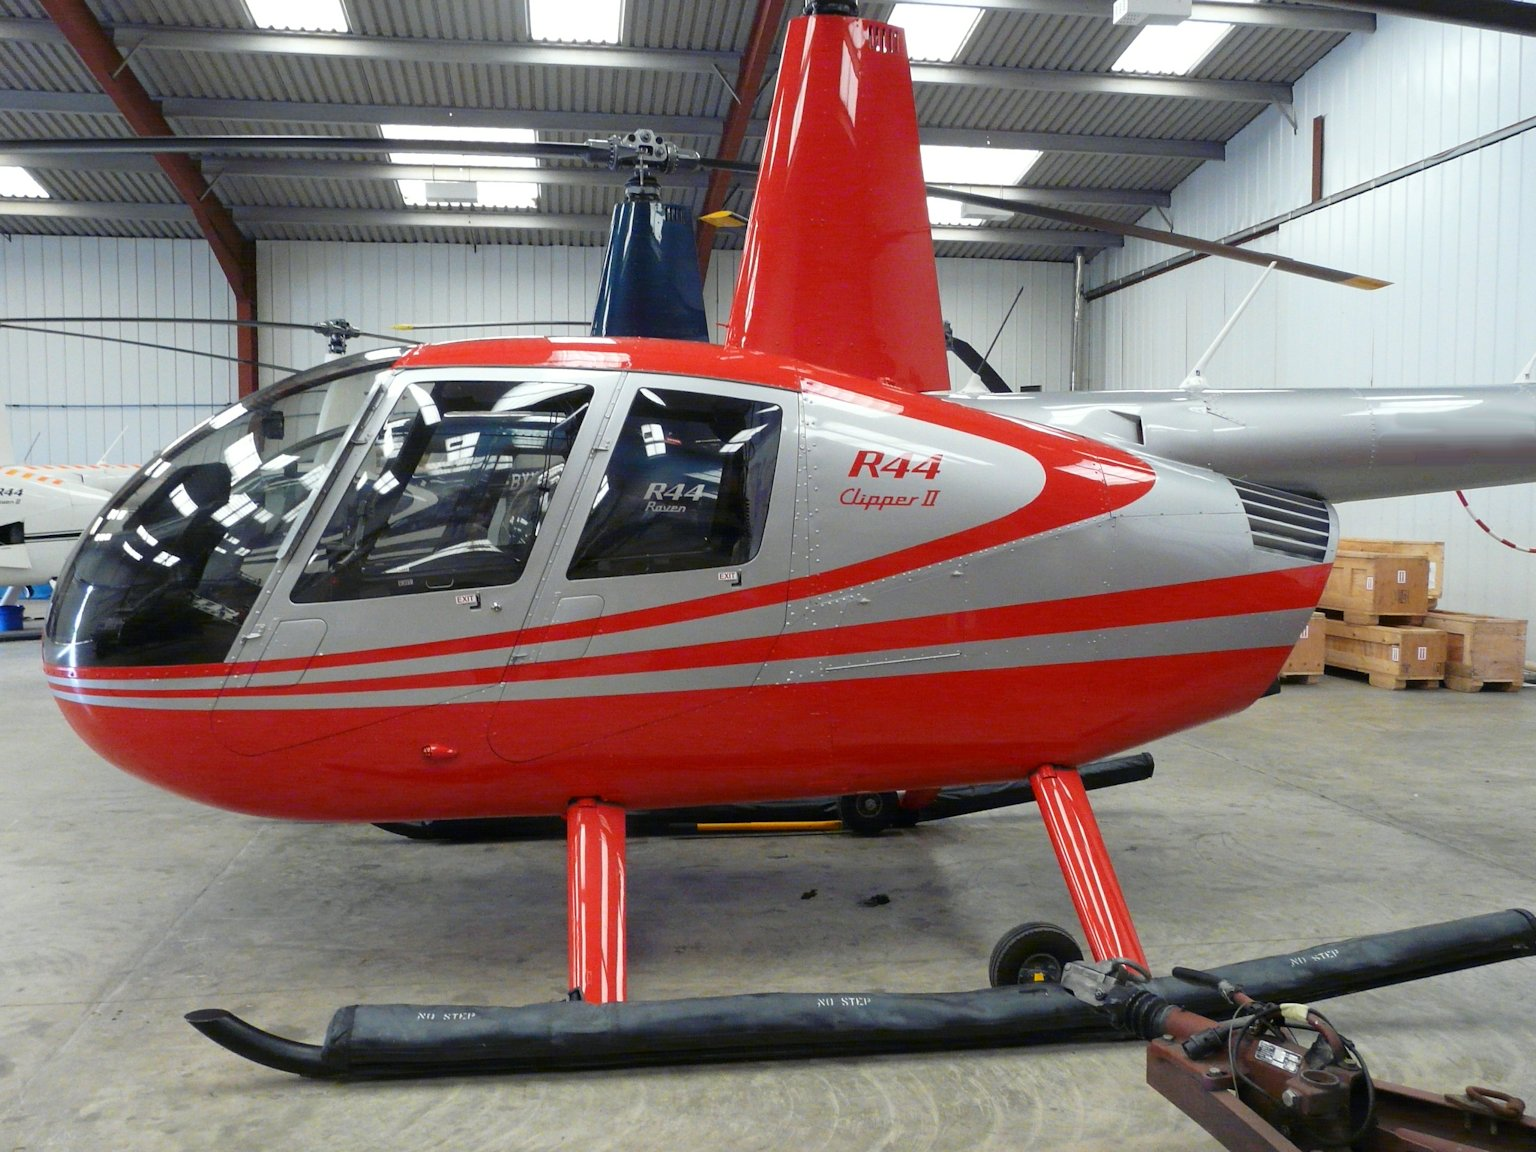 rc helicopters sale with Used Robinson R44 Clipper Ii 2010 on SilverSelfBalancingScooterHoverboard in addition 53p 20018 additionally Harry Potter Hogwarts Express Tin Sign as well Watch also Lonestar Kit Helicopter Design Mini Helicopter Personal Helicopter.